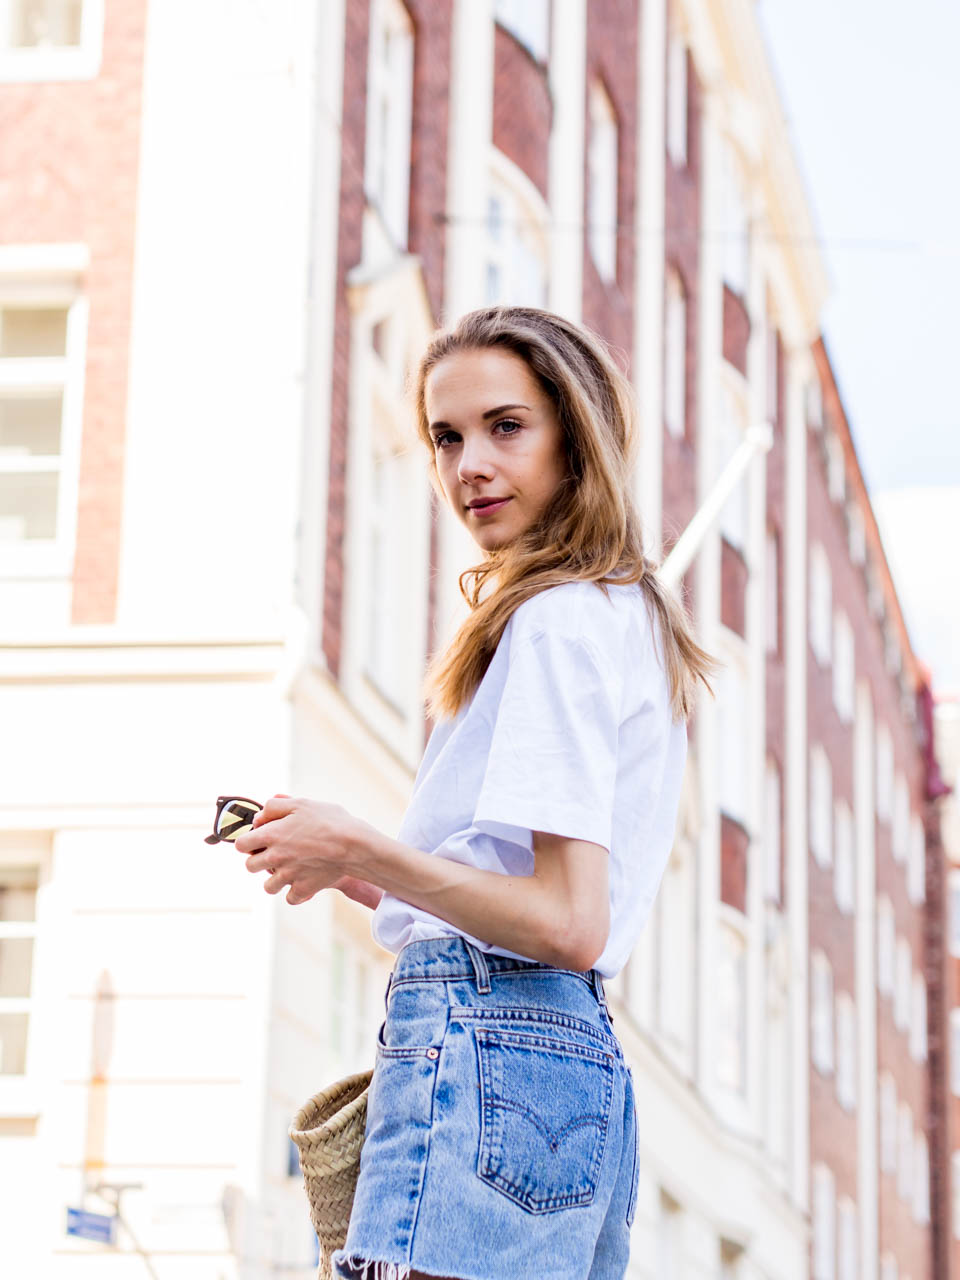 how-to-style-simple-white-t-shirt-summer-outfit-fashion-blogger-inspiration-streetstyle-helsinki